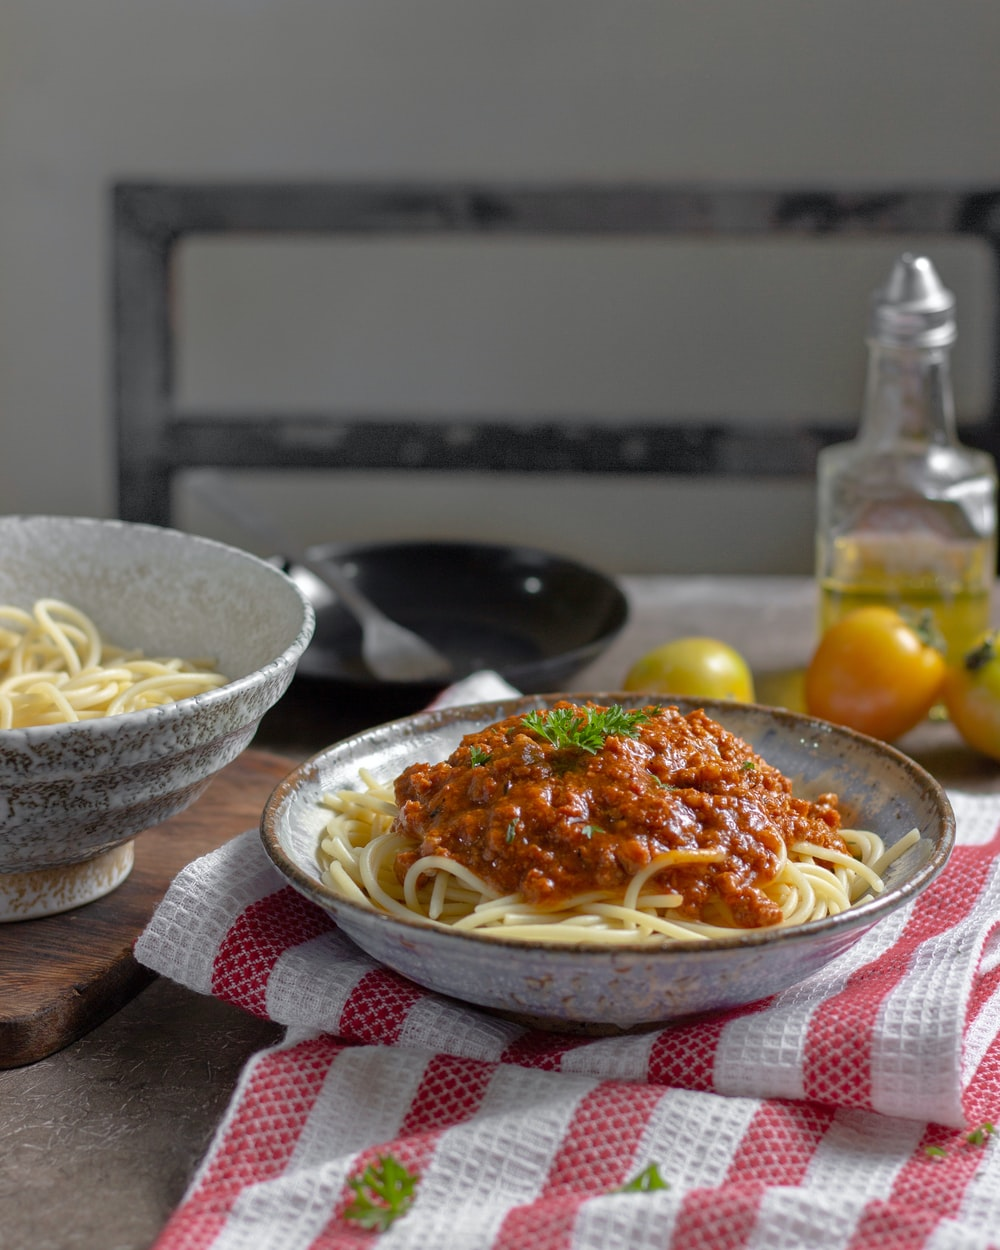 pasta with paste in gray bowl